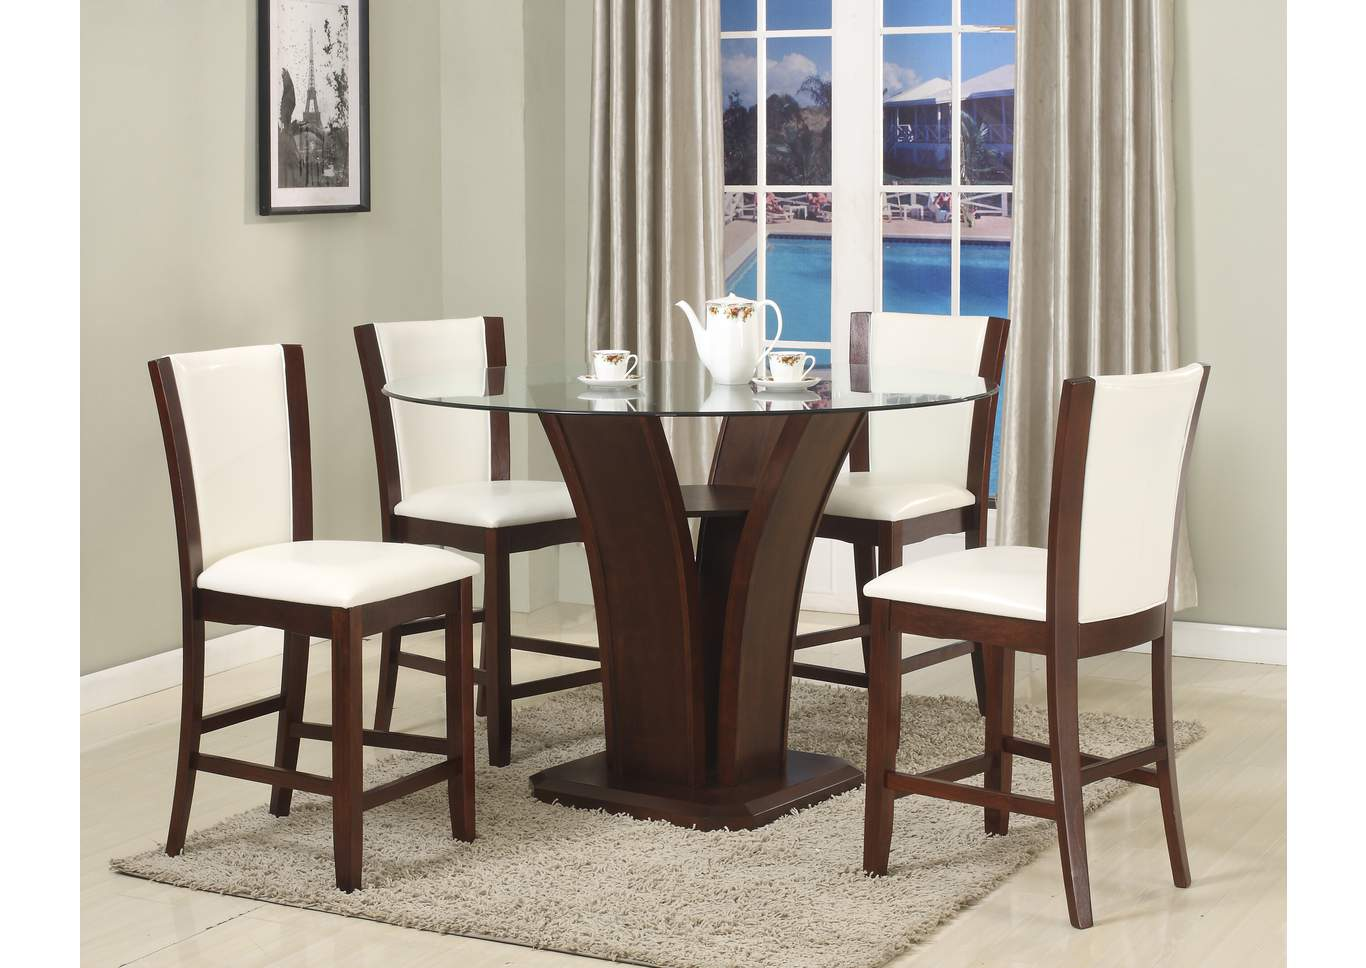 Camelia Counter Height Dining Room Table w/4 White Counter Height Chairs,Crown Mark